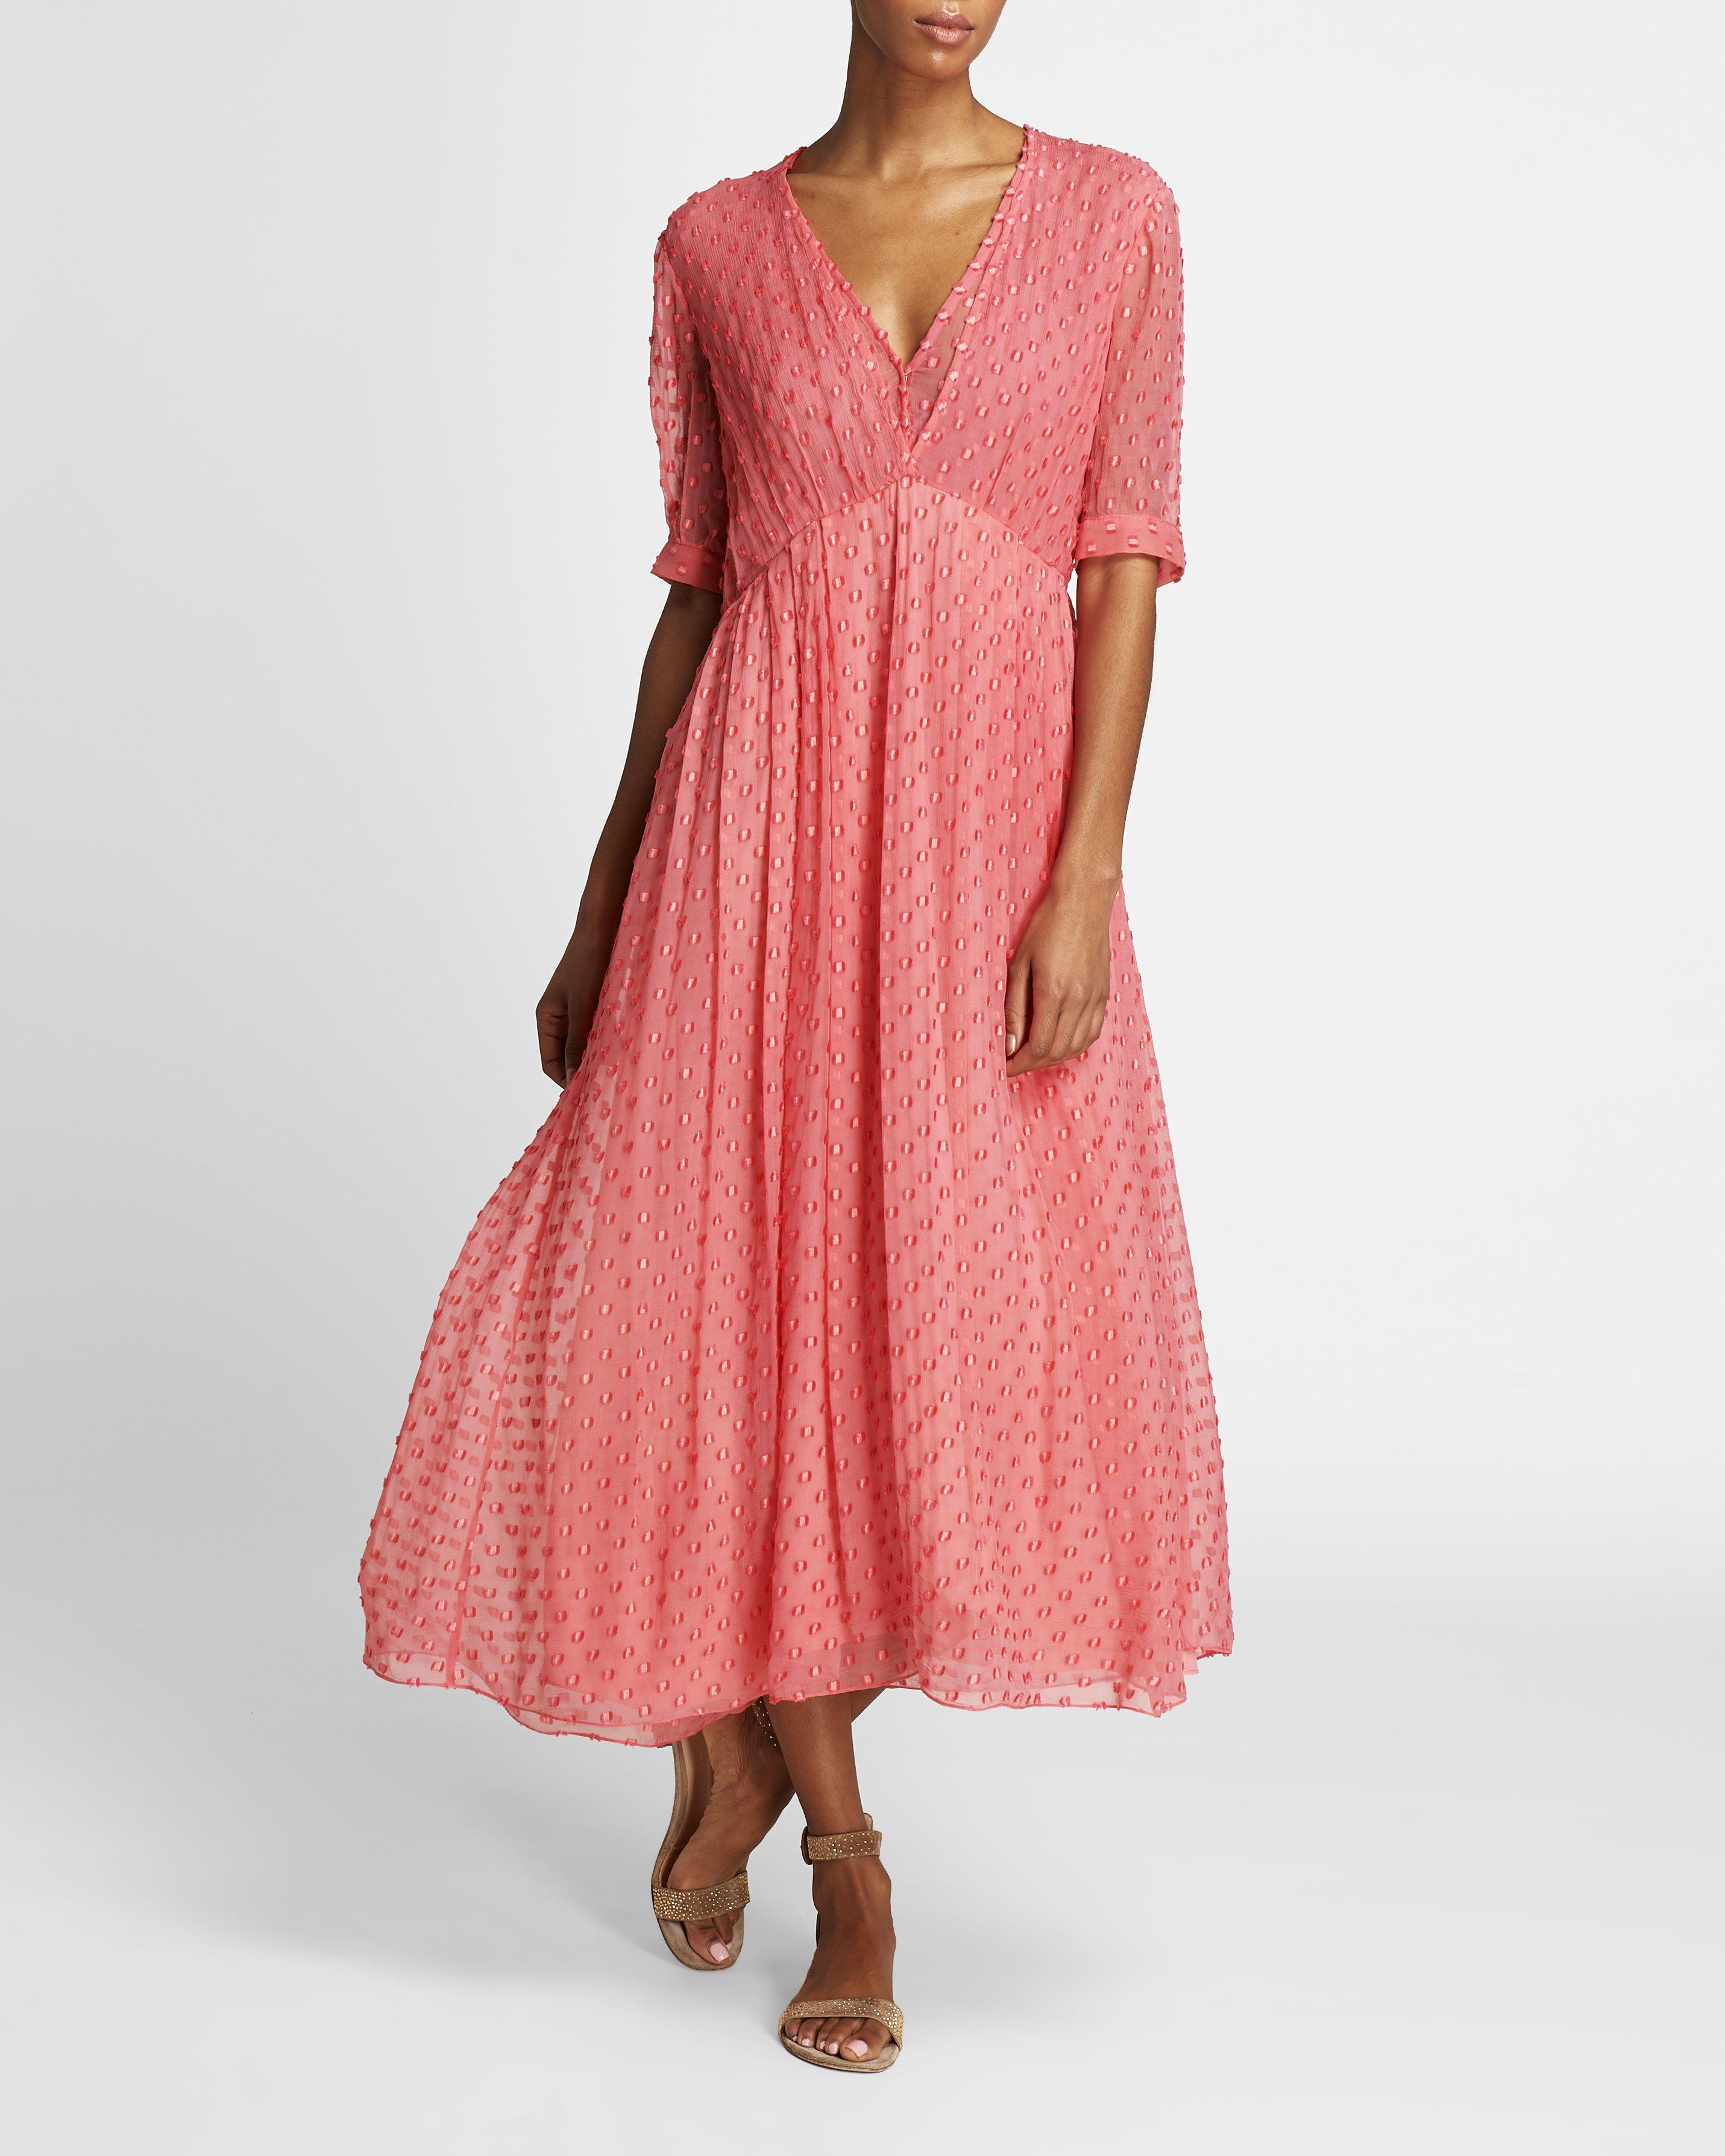 The Ivy Dress   Coral 2